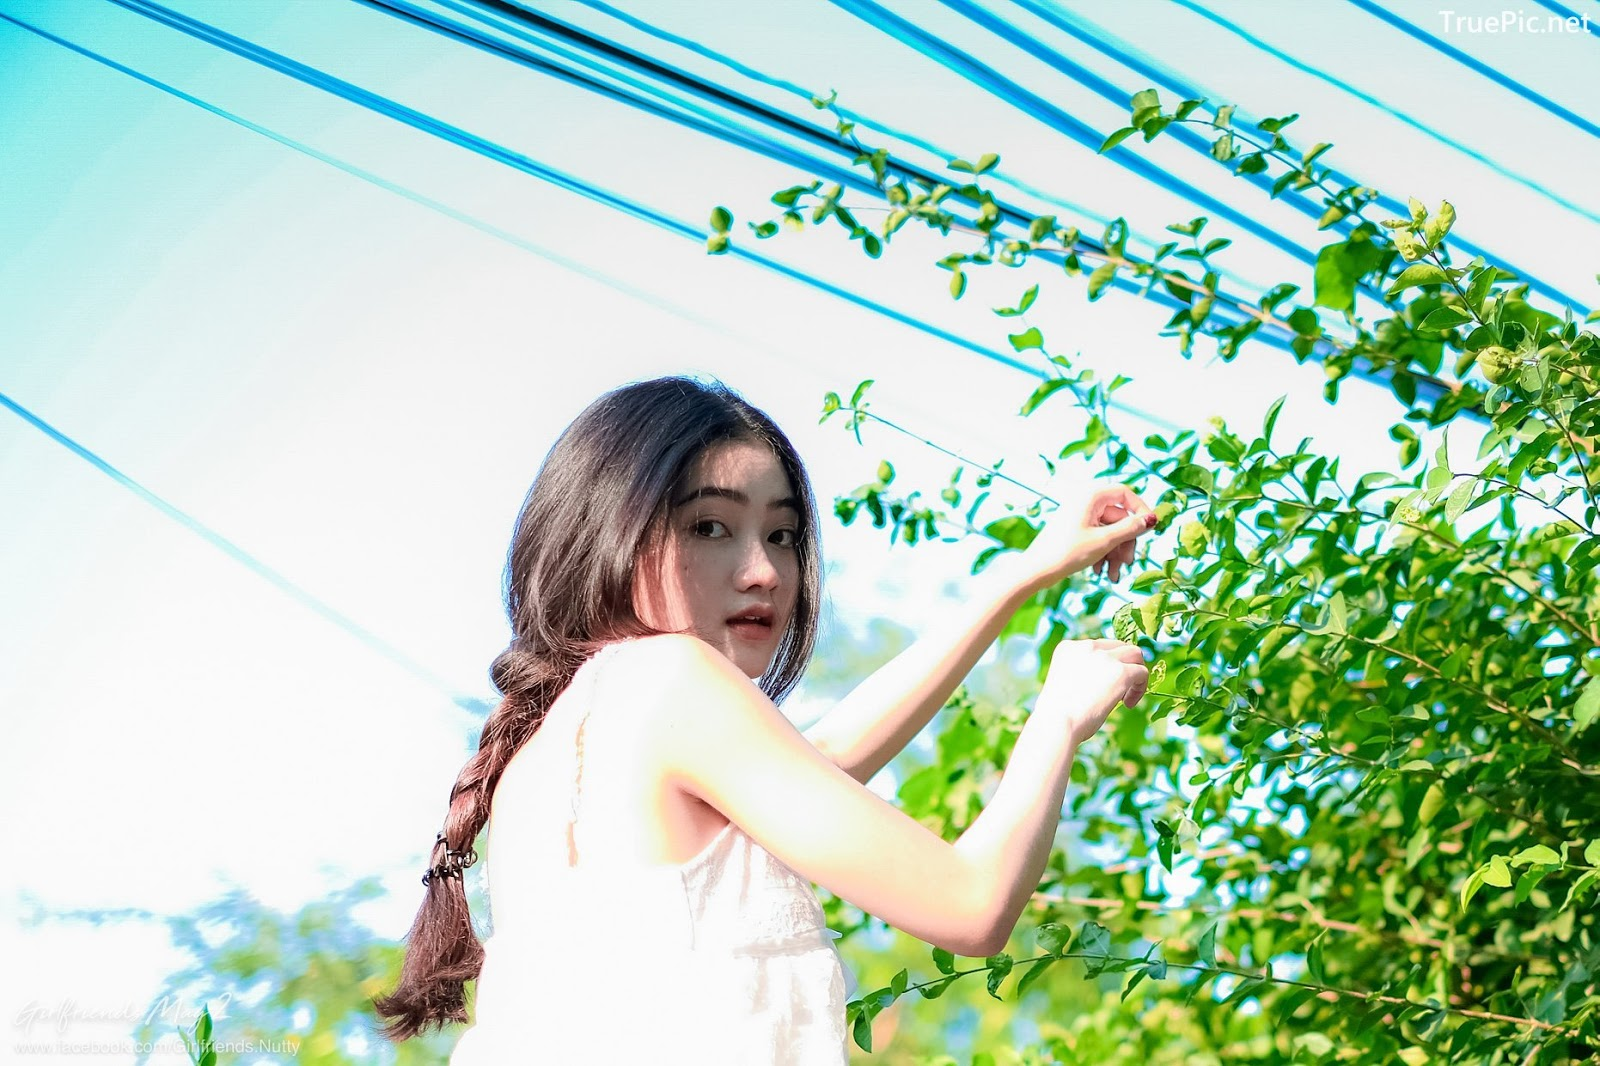 Image Thailand Model - Cholticha Intapuang - Sunsight on Backyard - TruePic.net - Picture-7